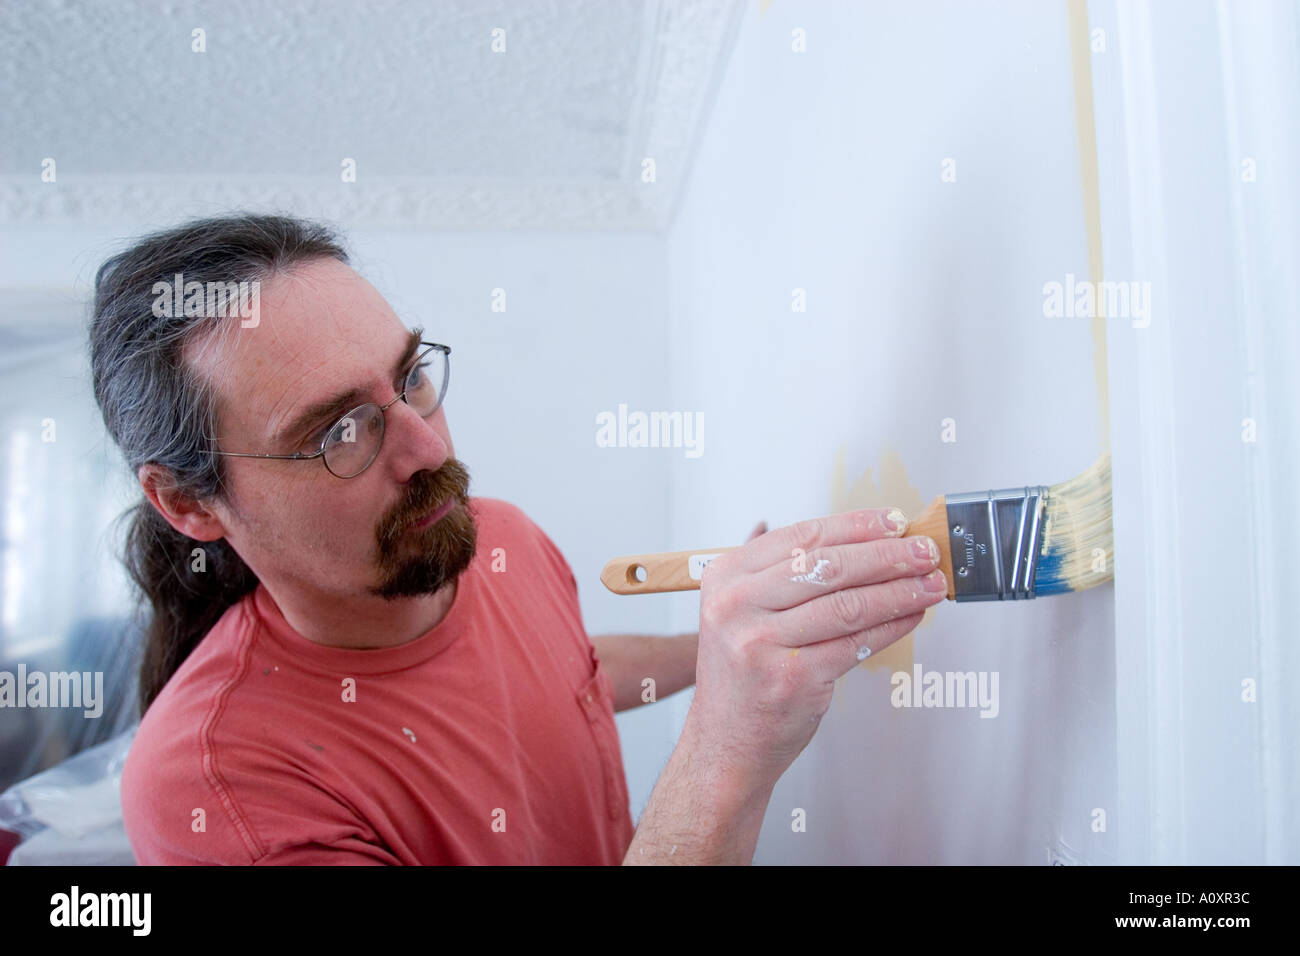 House Painter - Stock Image